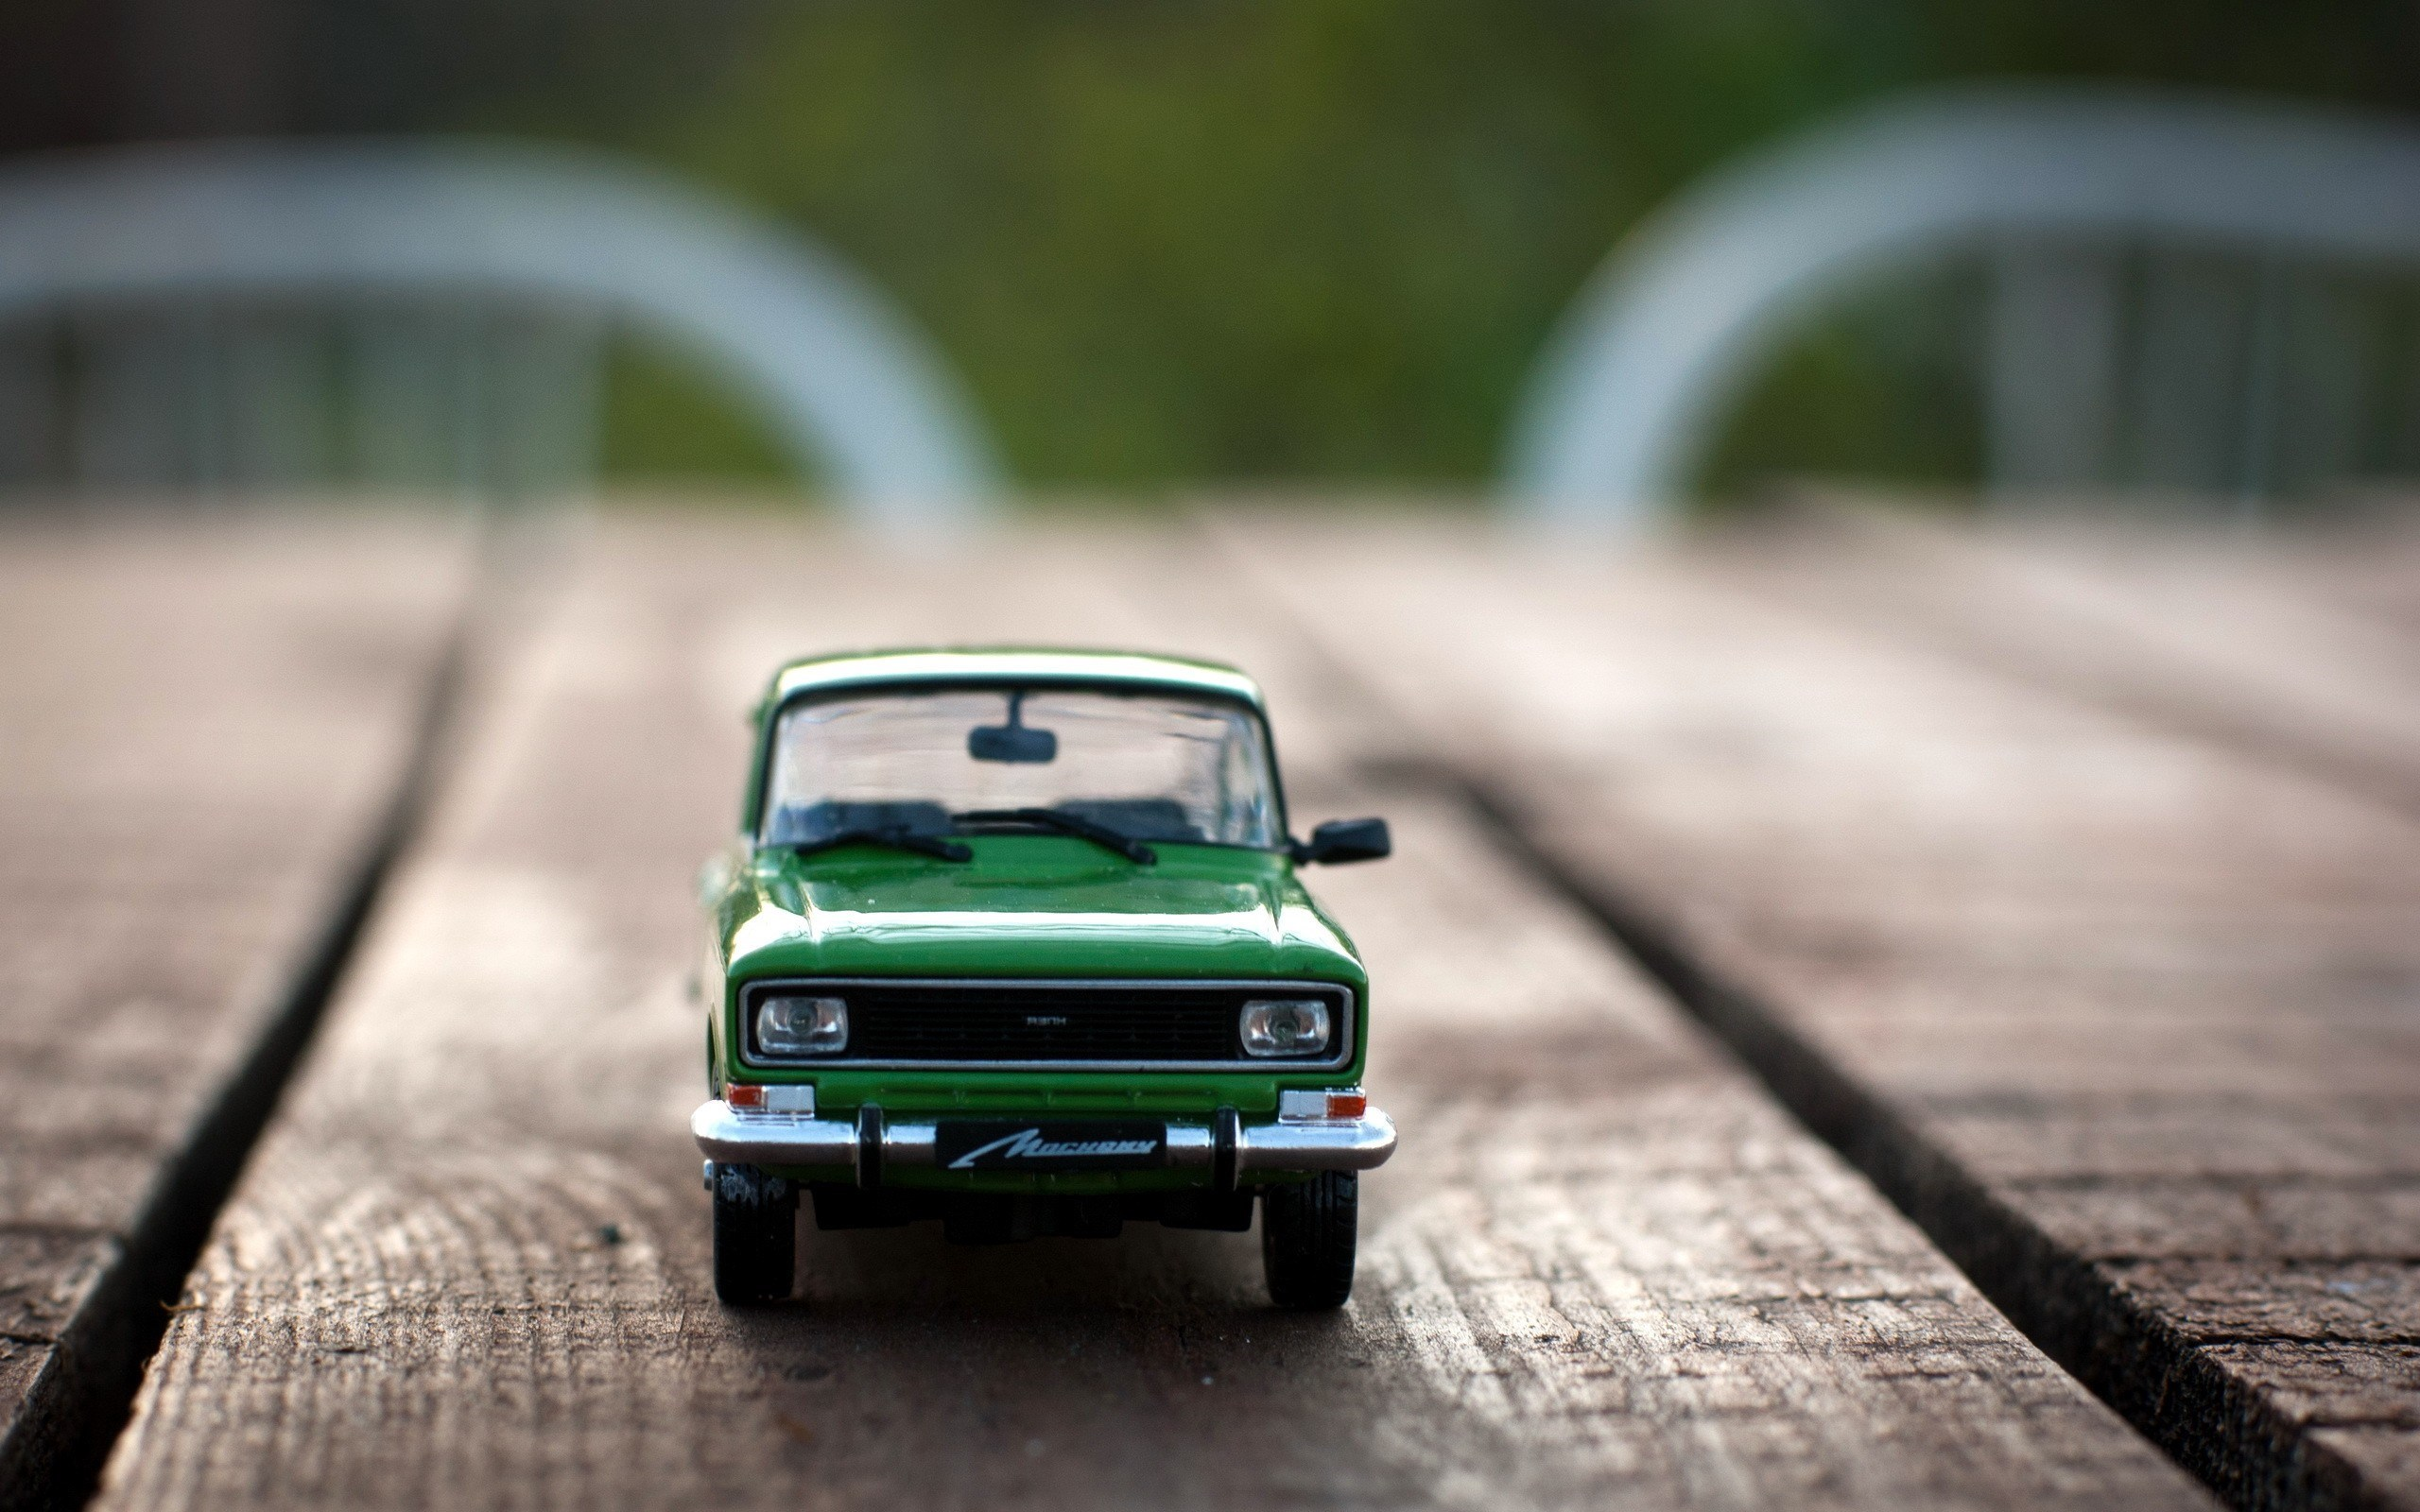 Large Toy Cars Wallpapers .